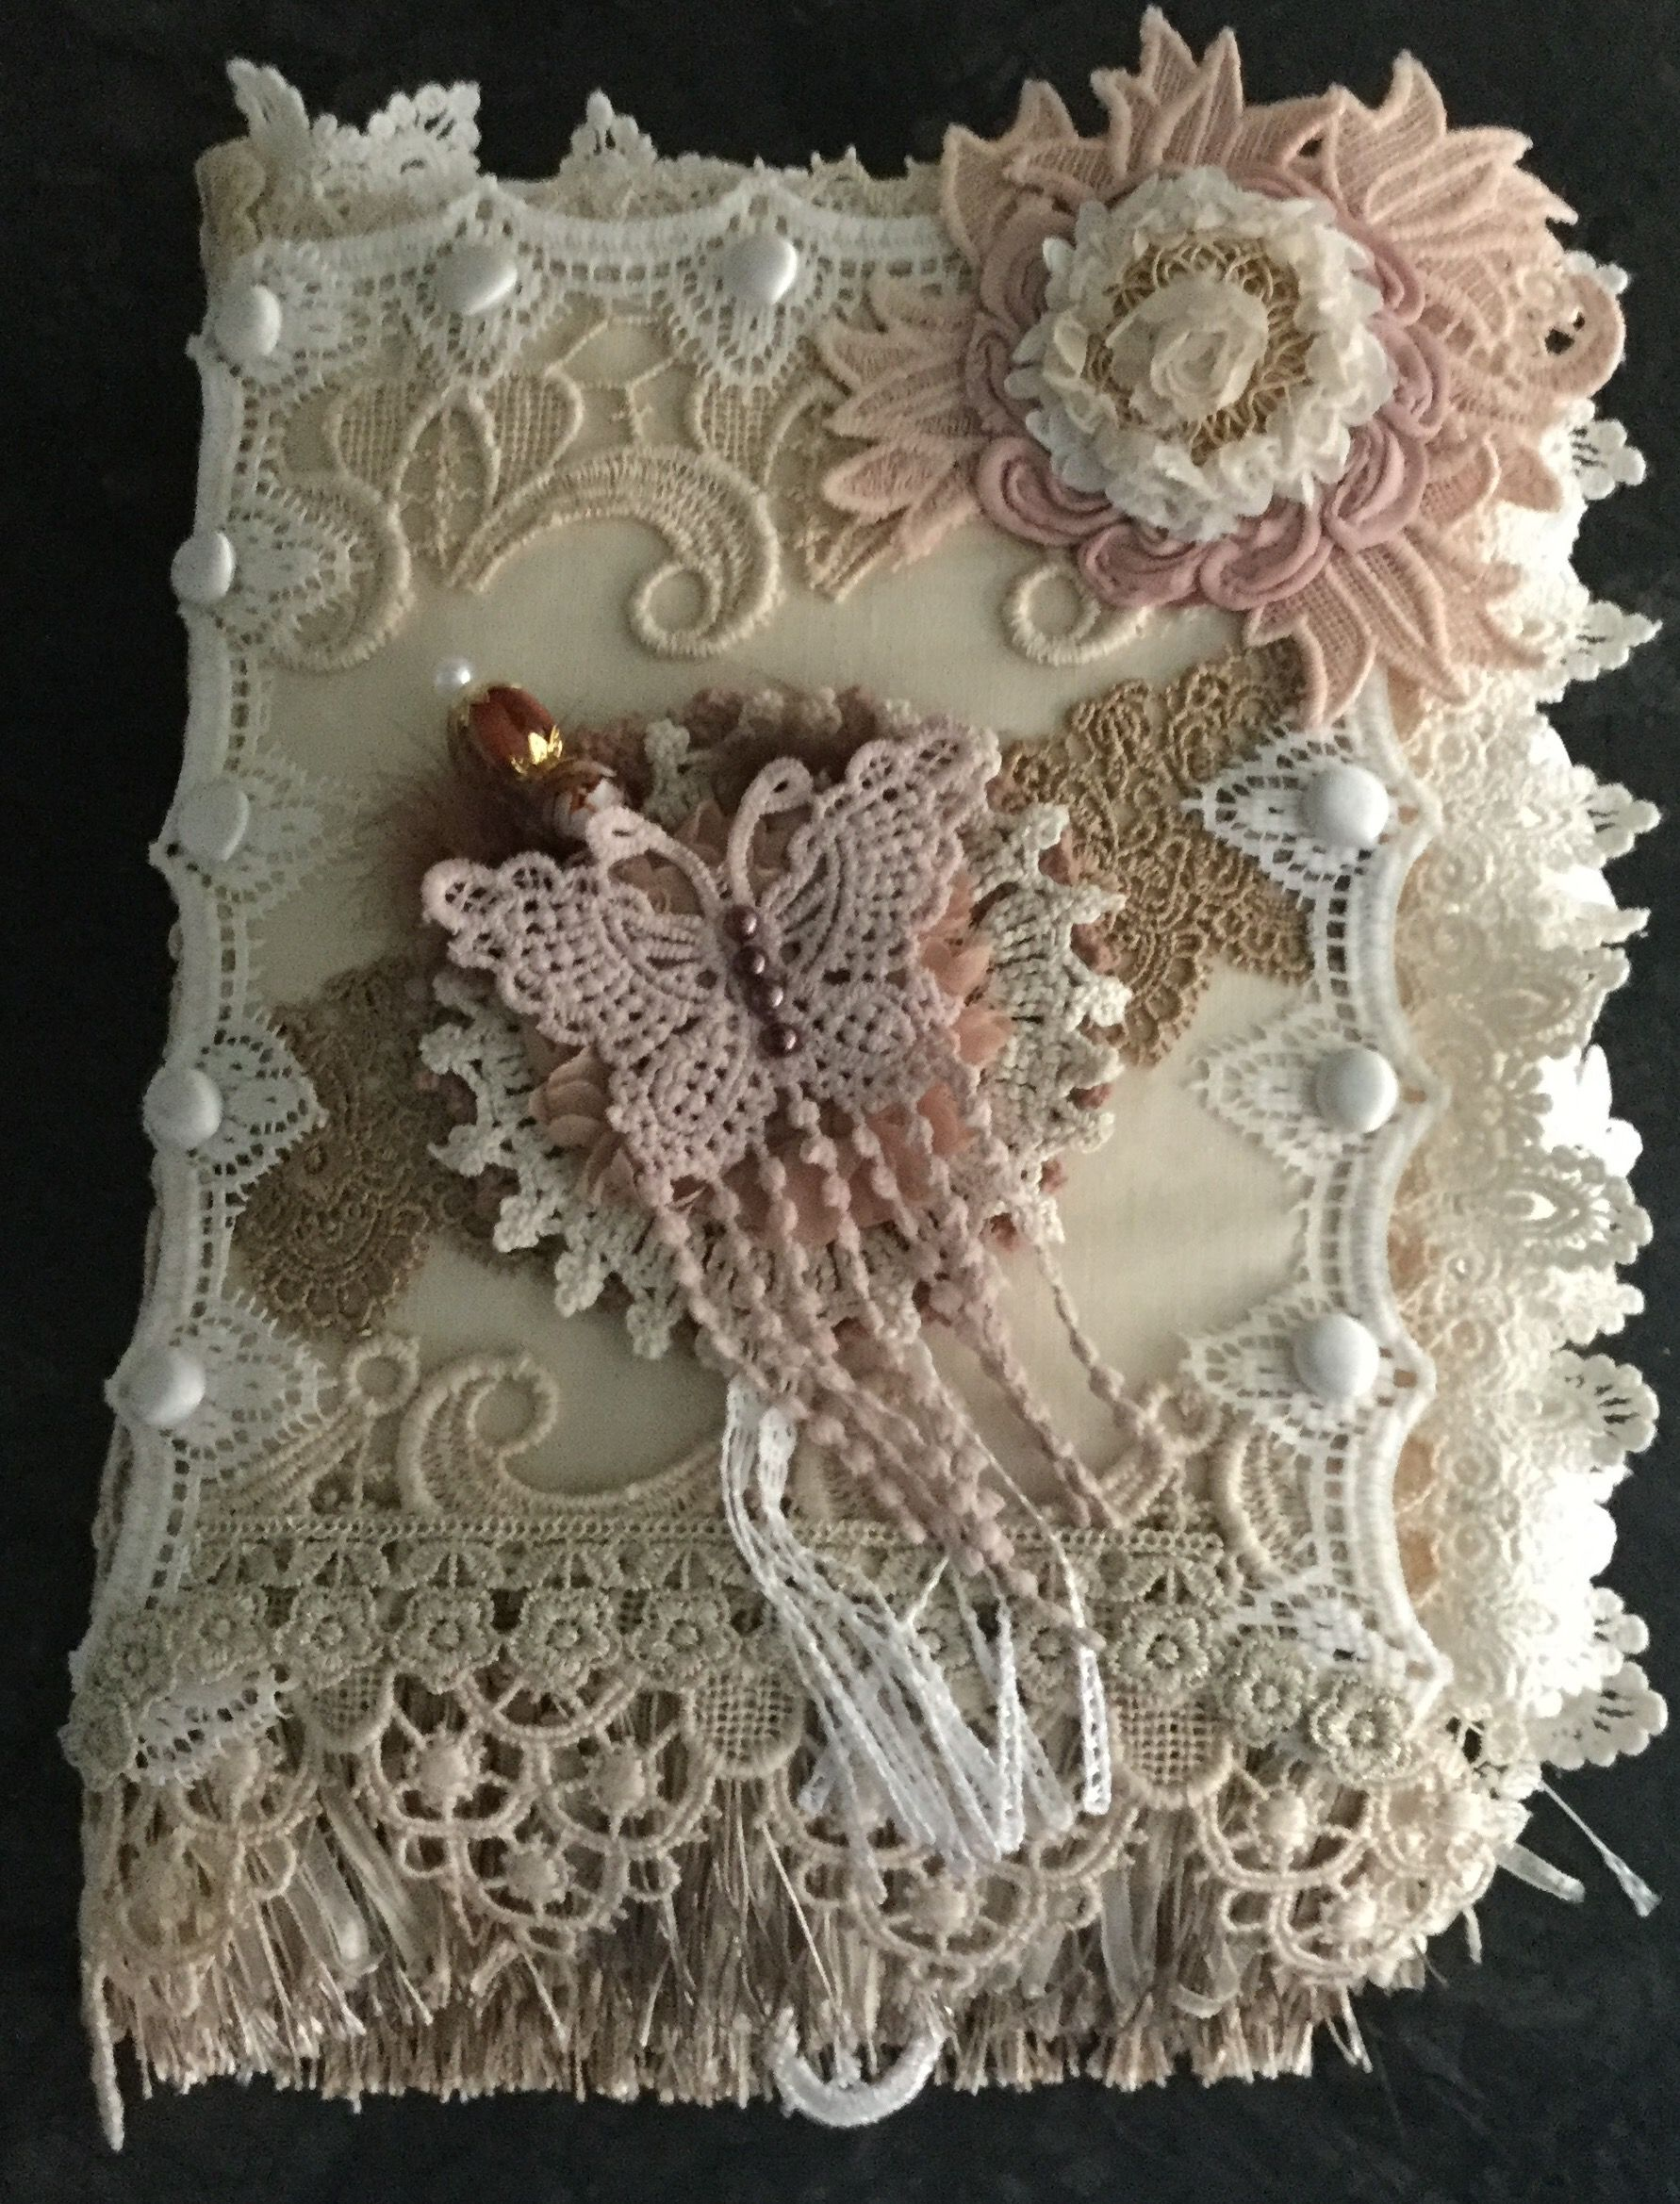 Vintage Style Lace Book By Jean Wragg Lace Crafts Handmade Books Fabric Book